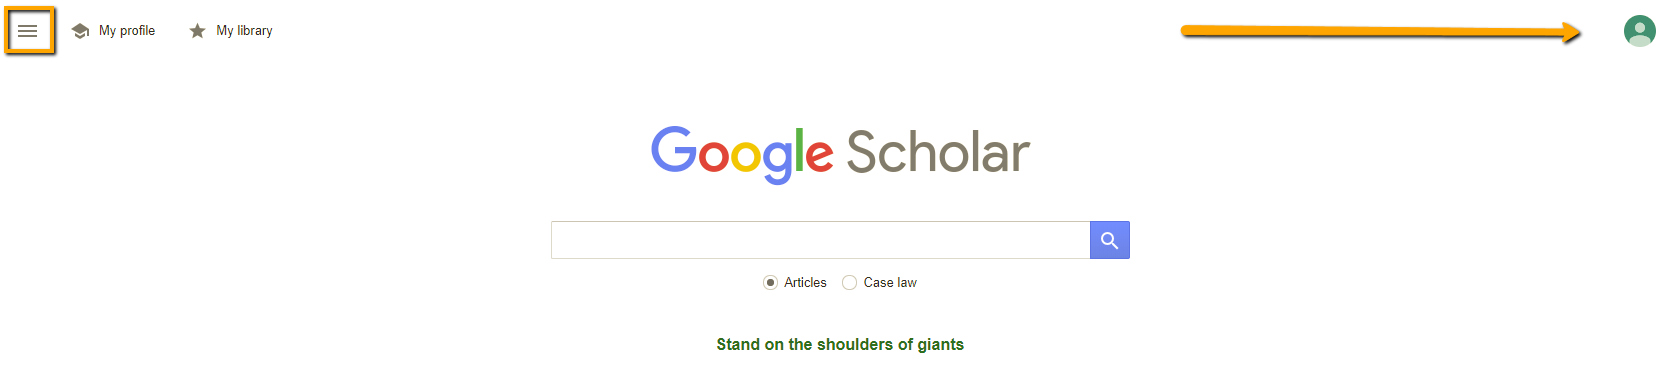 google scholar screen shot